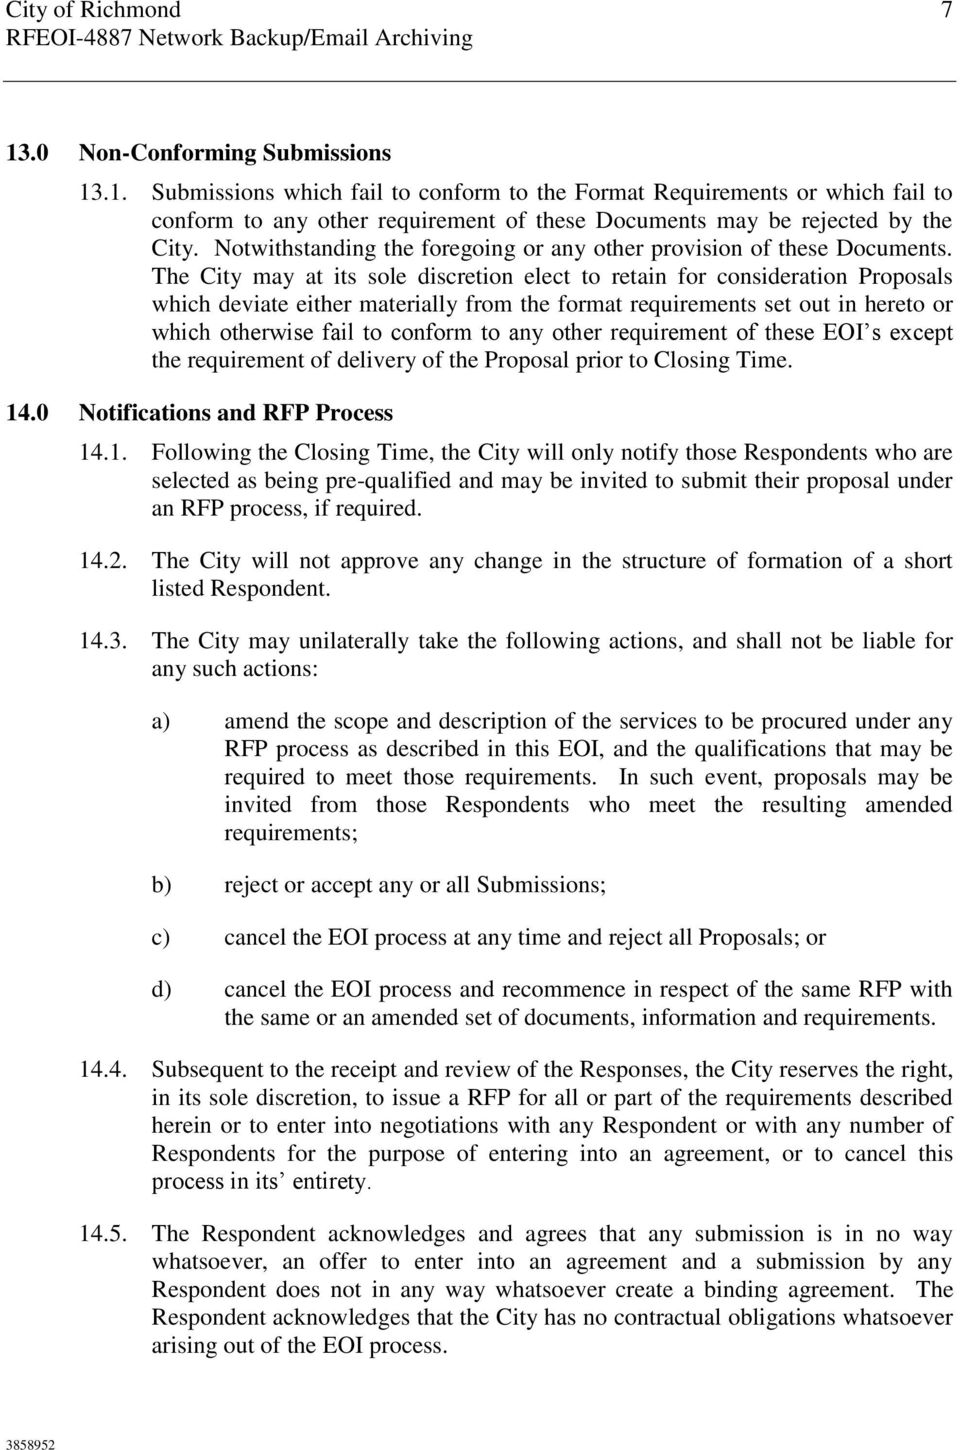 The City may at its sole discretion elect to retain for consideration Proposals which deviate either materially from the format requirements set out in hereto or which otherwise fail to conform to